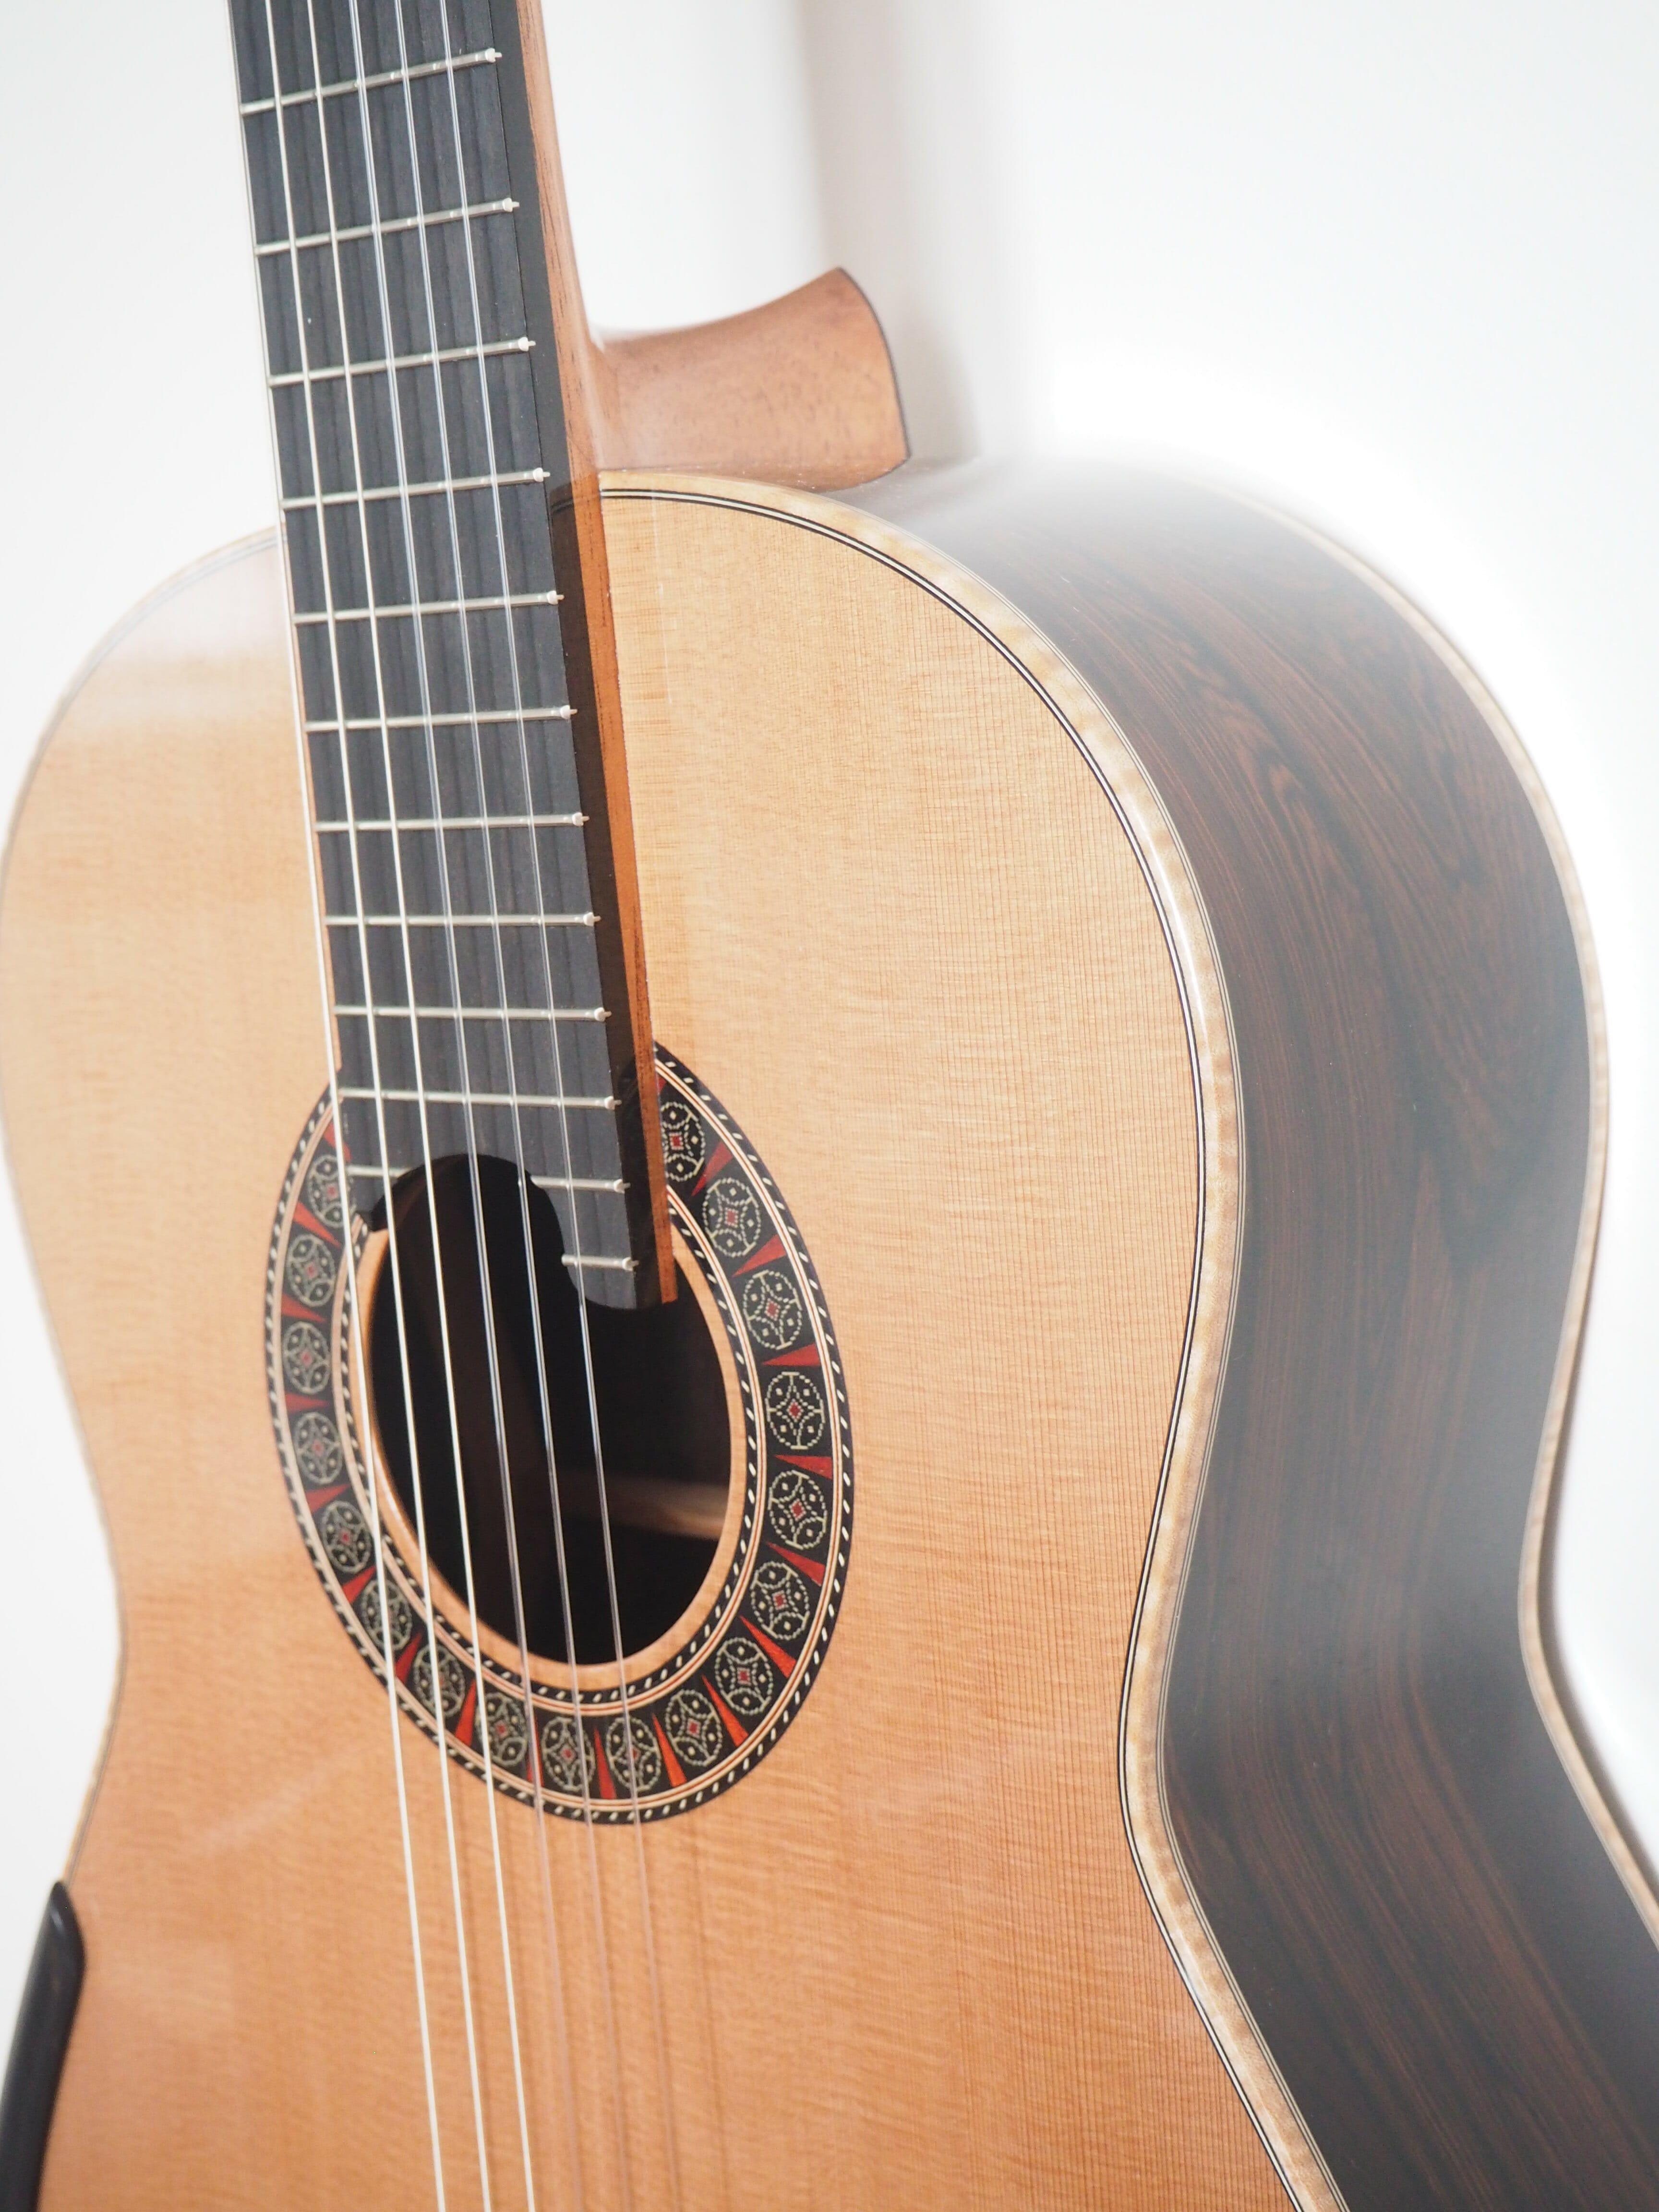 guitare classique luthier Martin Blackwell double-table